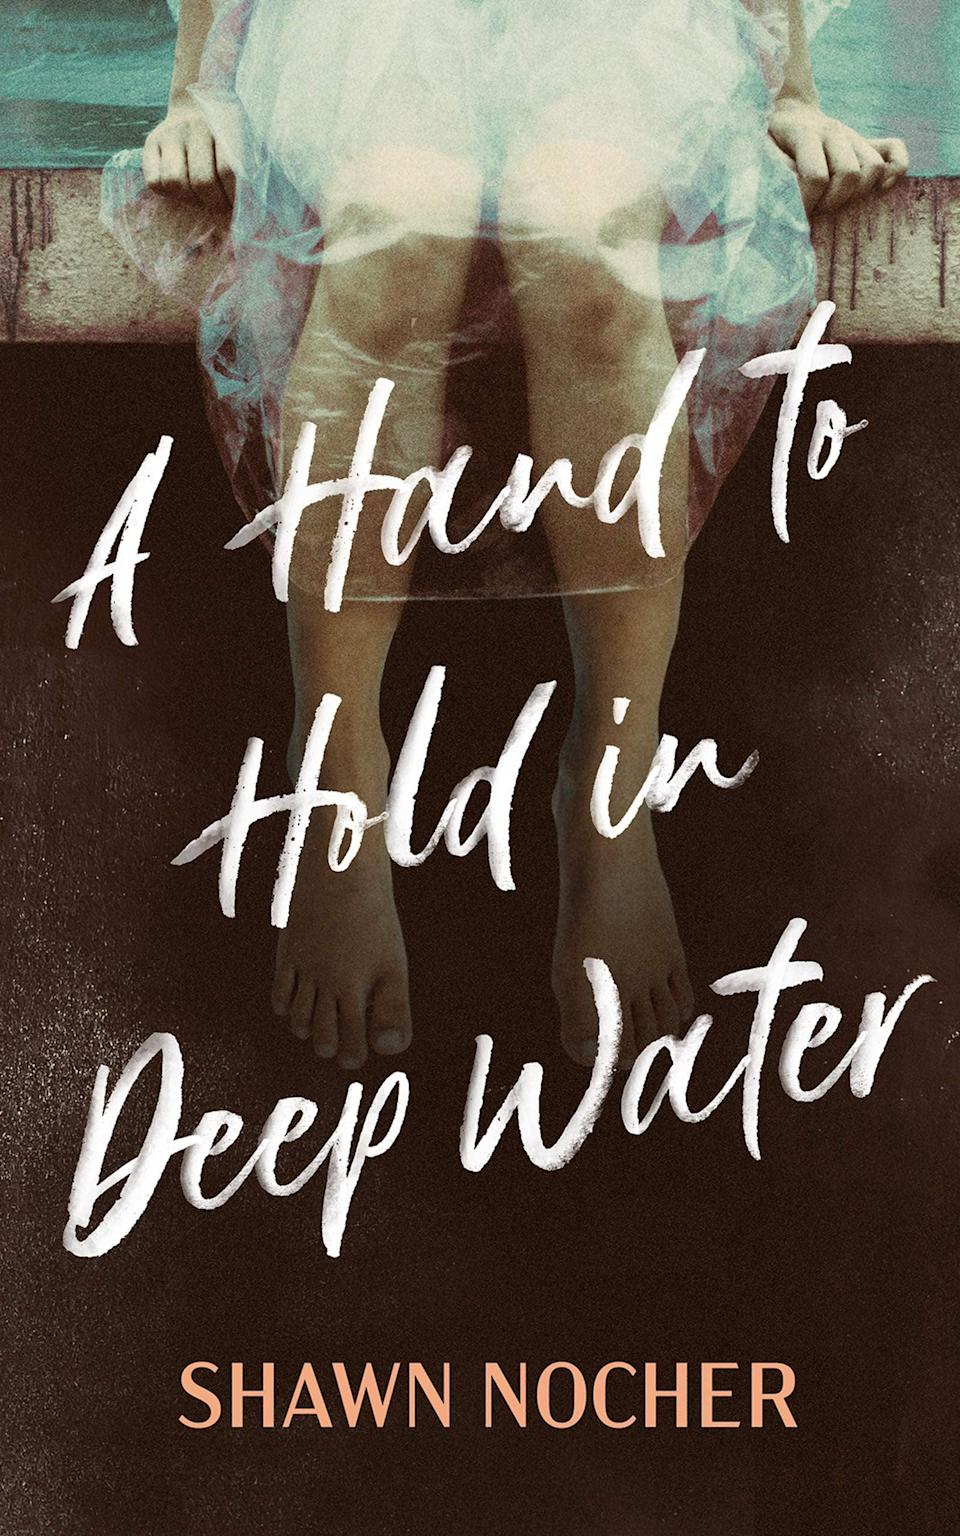 <p>Shawn Nocher's <span><strong>A Hand to Hold in Deep Water</strong></span> is an insightful story about what it takes to make a family. It's been 30 years since Lacey's mother abandoned her and her stepfather, and she's now a single mother herself. When her daughter is diagnosed with a terrible illness, Lacey heads home to be near her stepdad and finally reckon with the pain her mother caused them both. </p> <p><em>Out June 22</em></p>